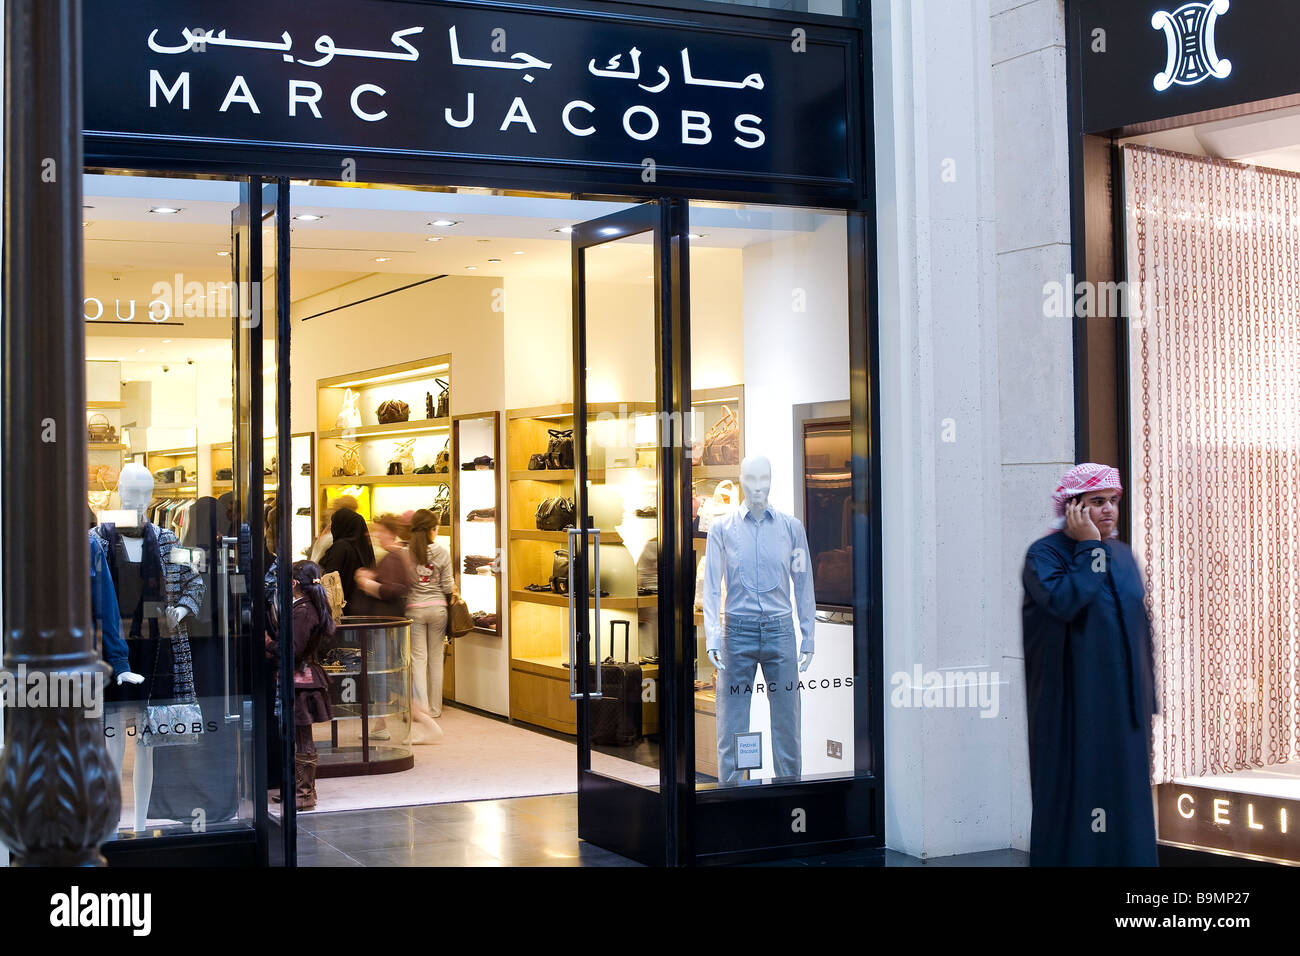 7391f4a3c10eb Marc Jacobs Stock Photos   Marc Jacobs Stock Images - Alamy